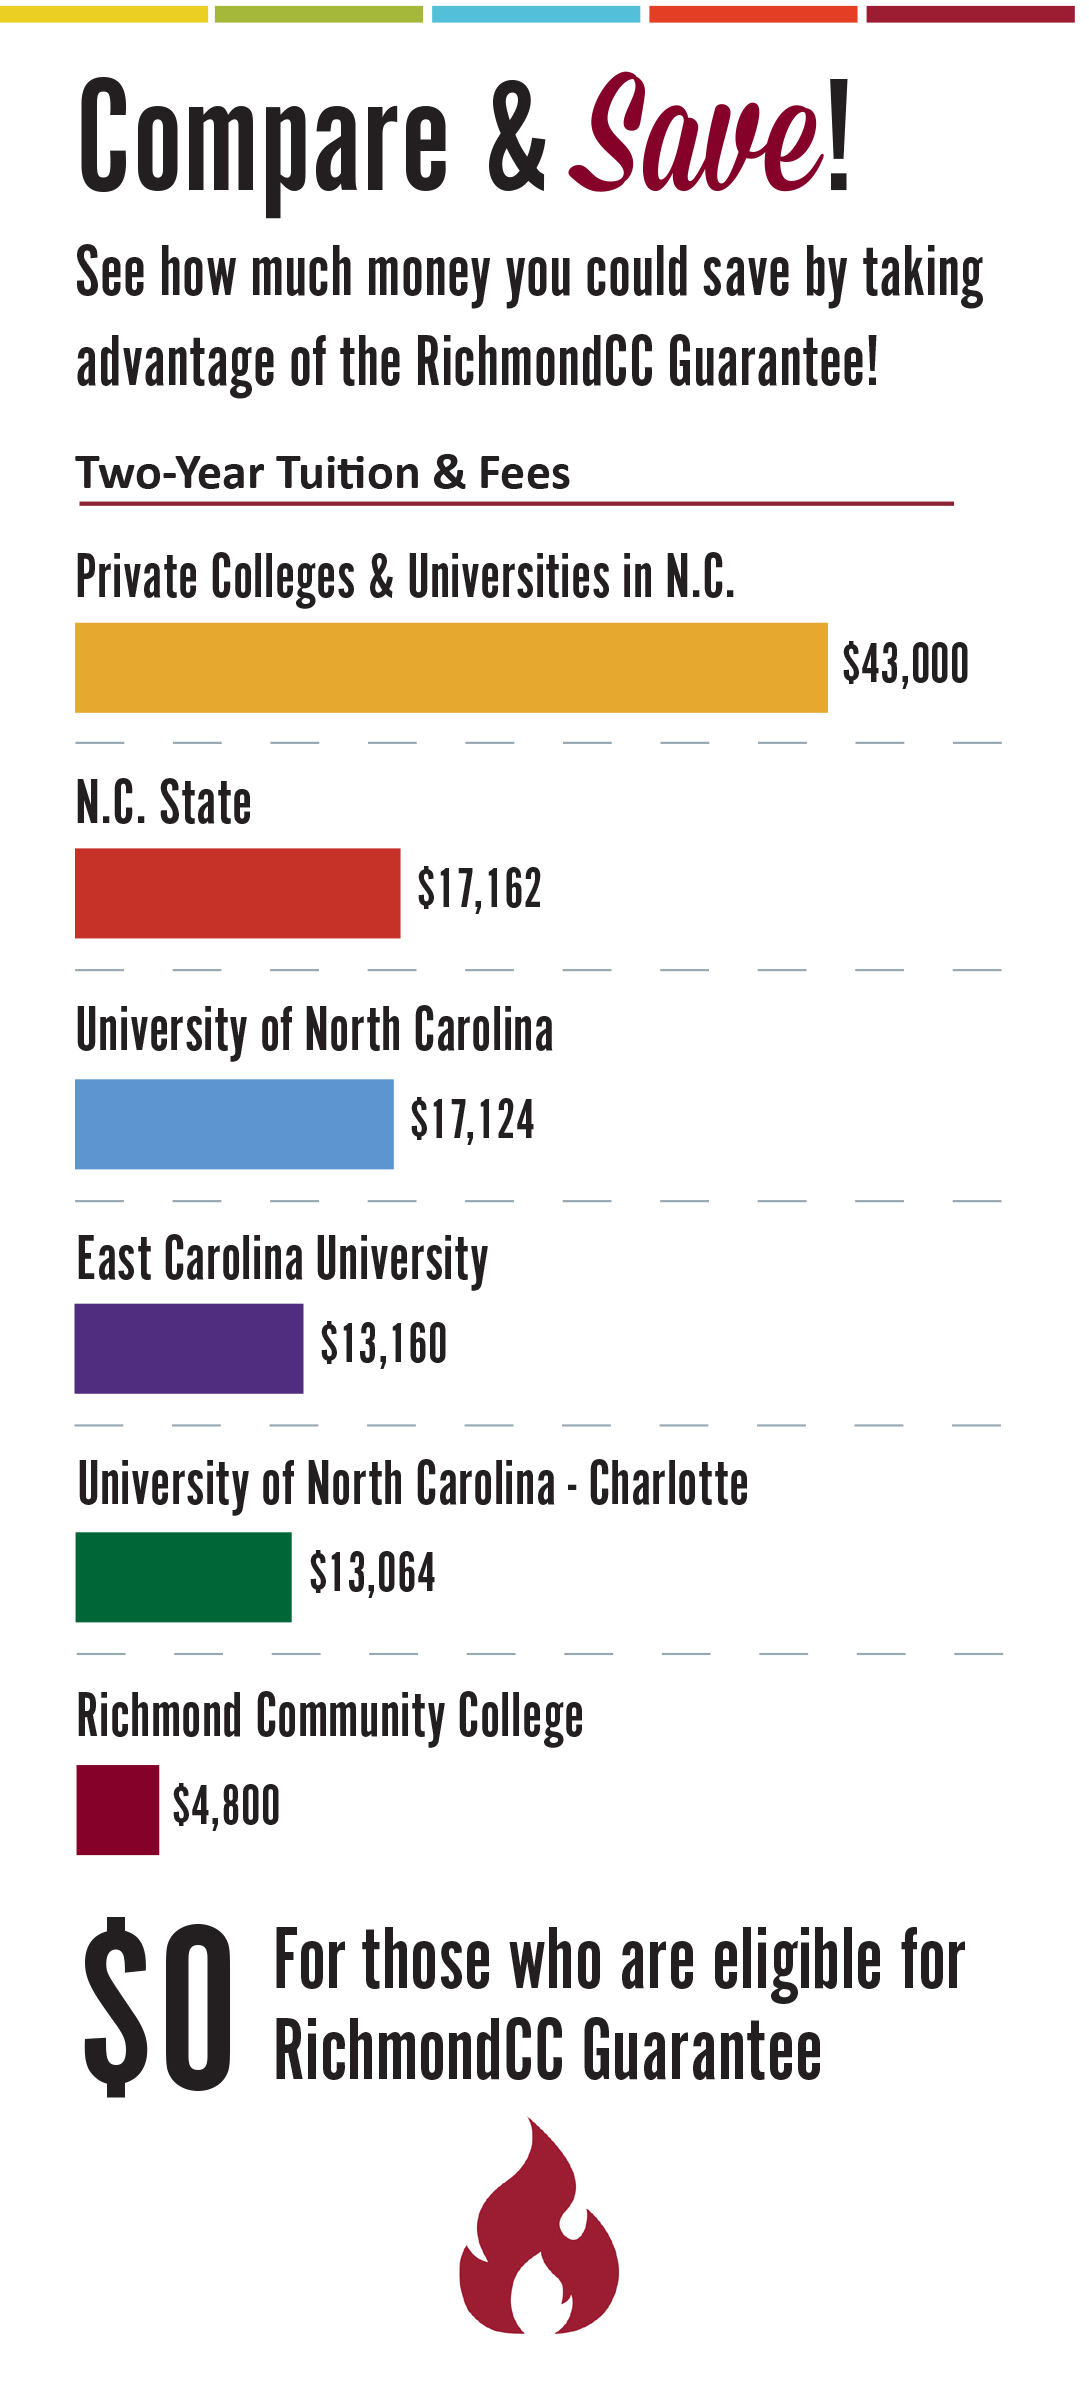 Image comparing 2-year tuition and fees to other colleges and universities versus the $0 in tuition and fees for the RichmondCC Guarantee